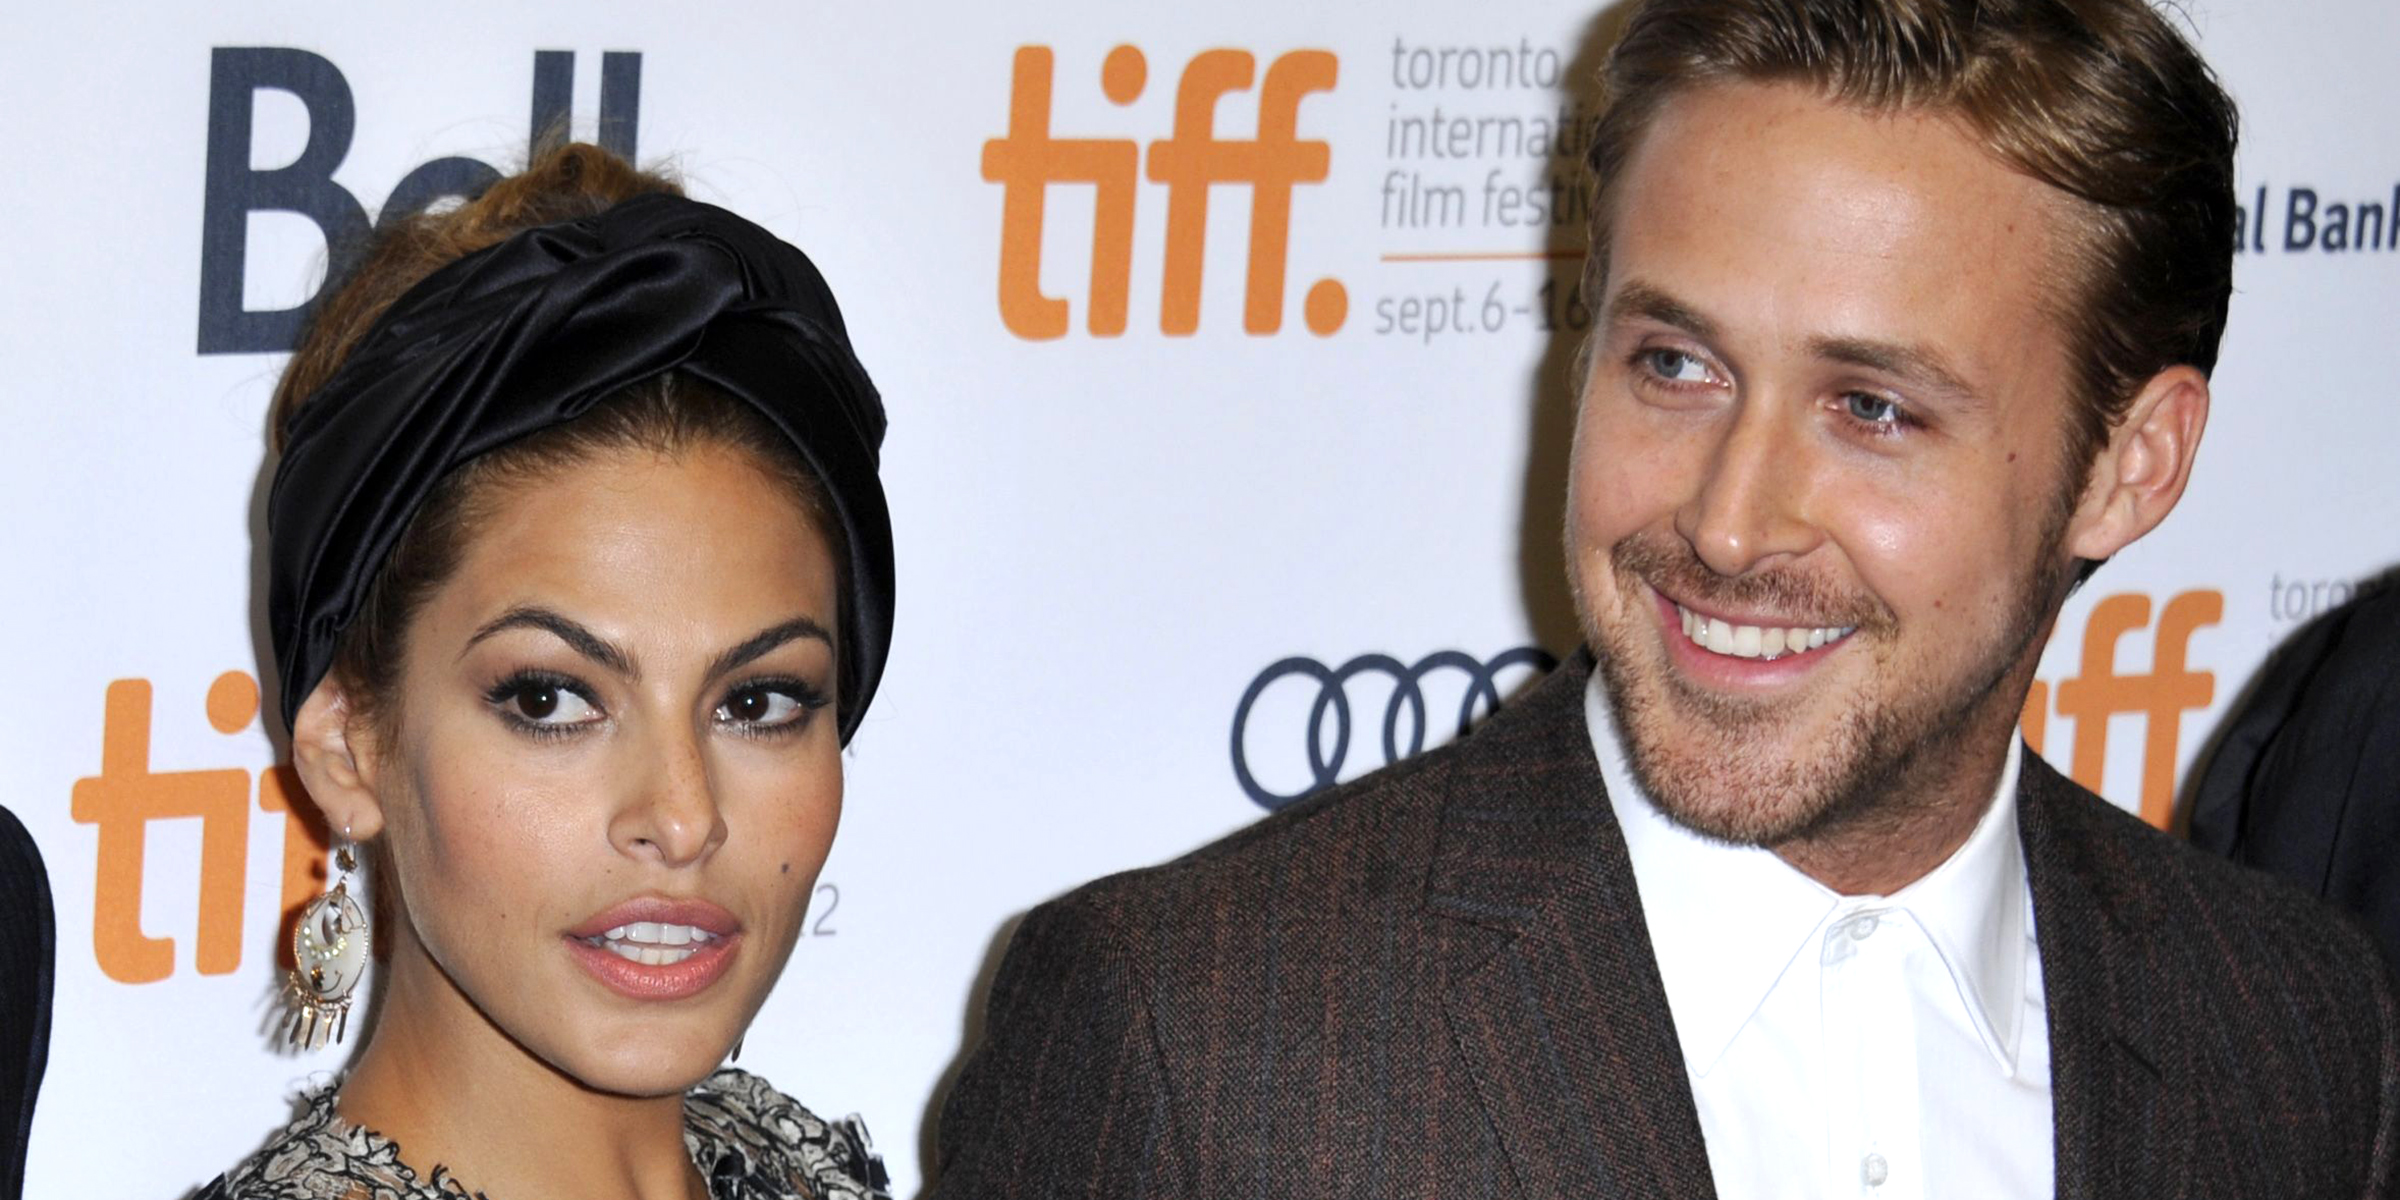 Eva Mendes: I didn't envision becoming a mom until 'Ryan Gosling happened'